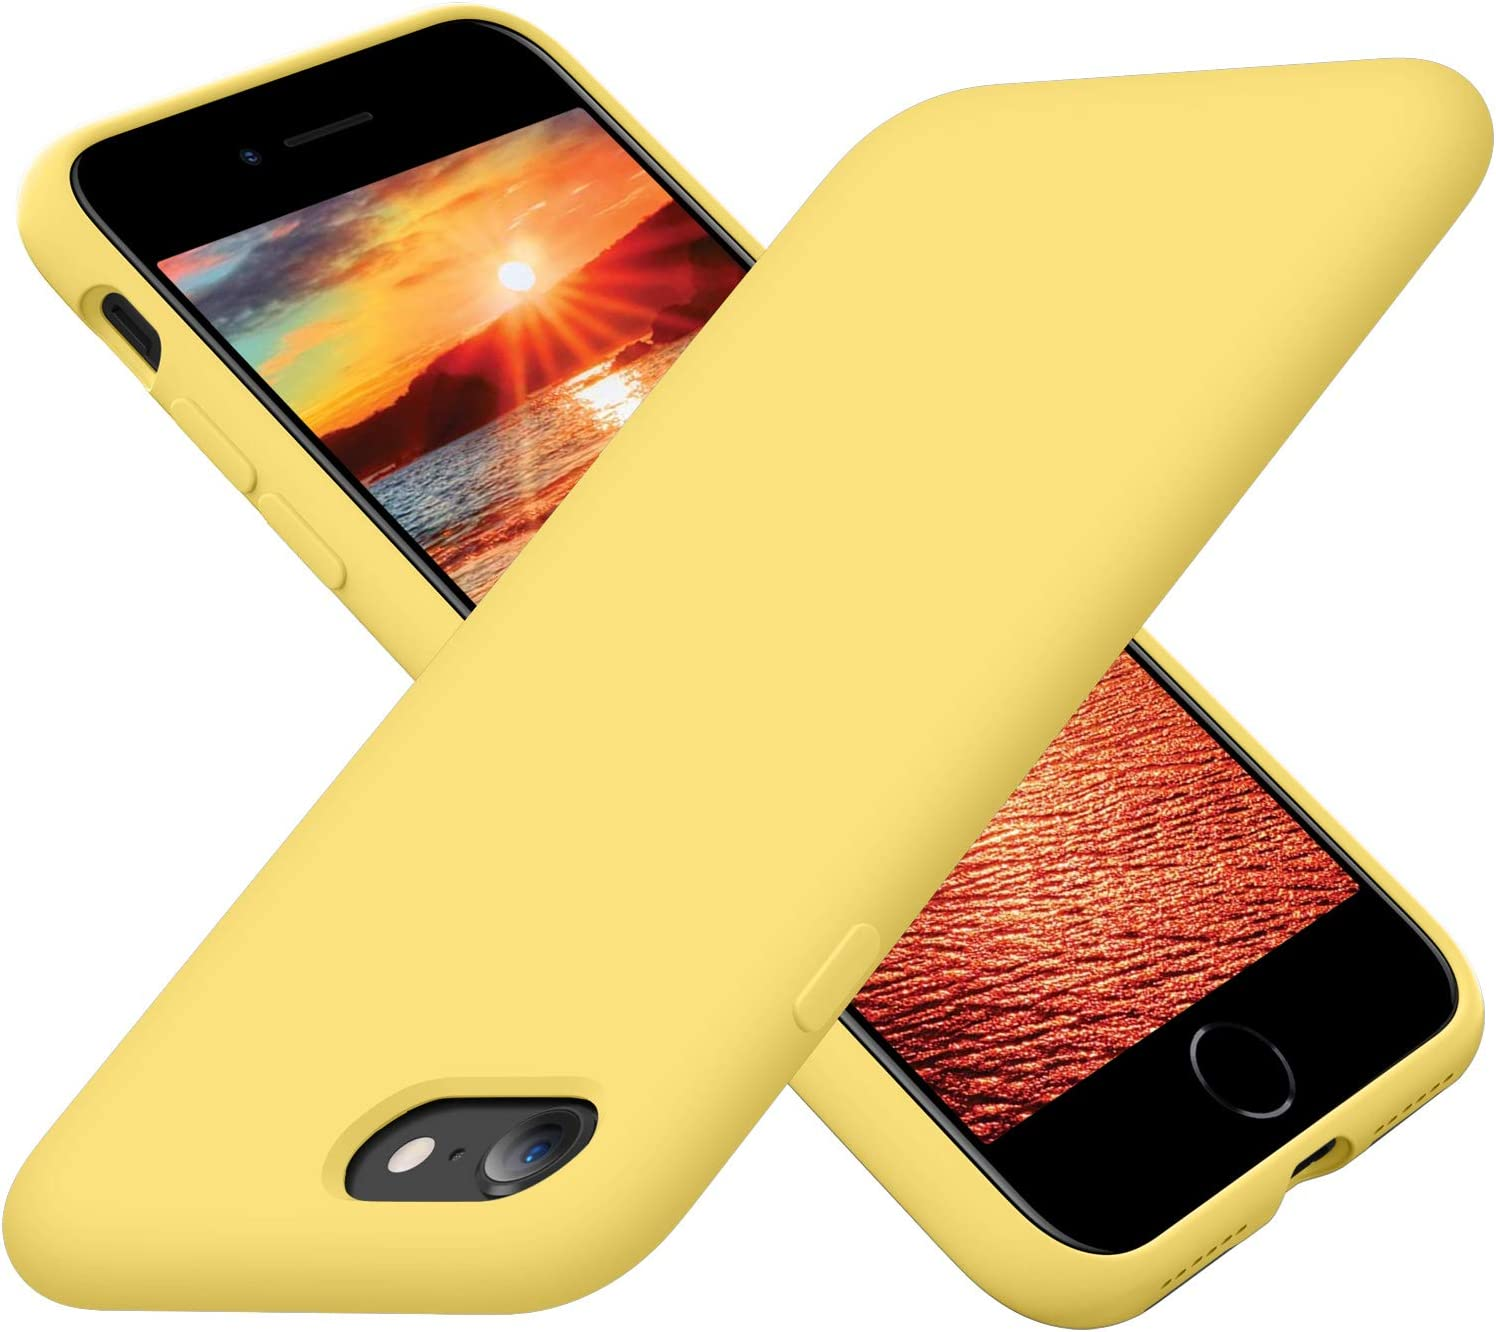 Cordking iPhone SE 2020 Case, iPhone 7 8 Case, Silicone Ultra Slim Shockproof Phone Case with [Soft Microfiber Lining], 4.7 inch, Yellow